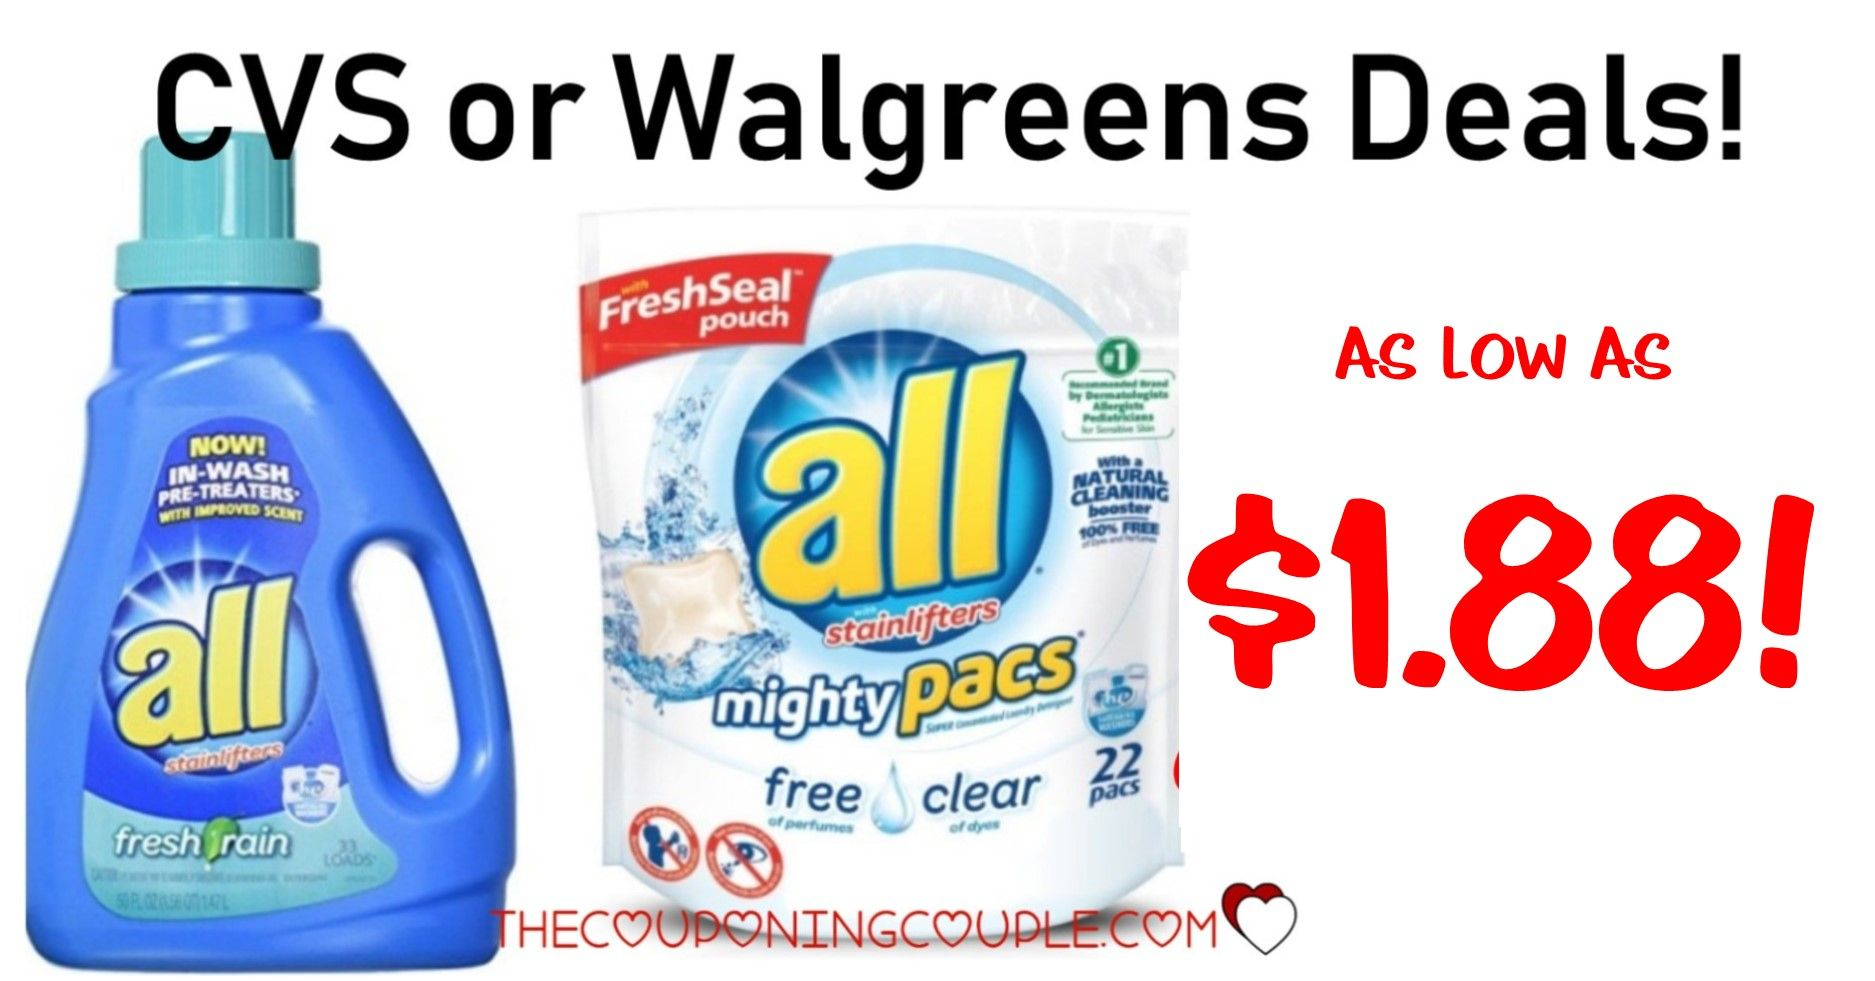 All Laundry Detergent Deal 1 68 With A Walmart Deal Laundry